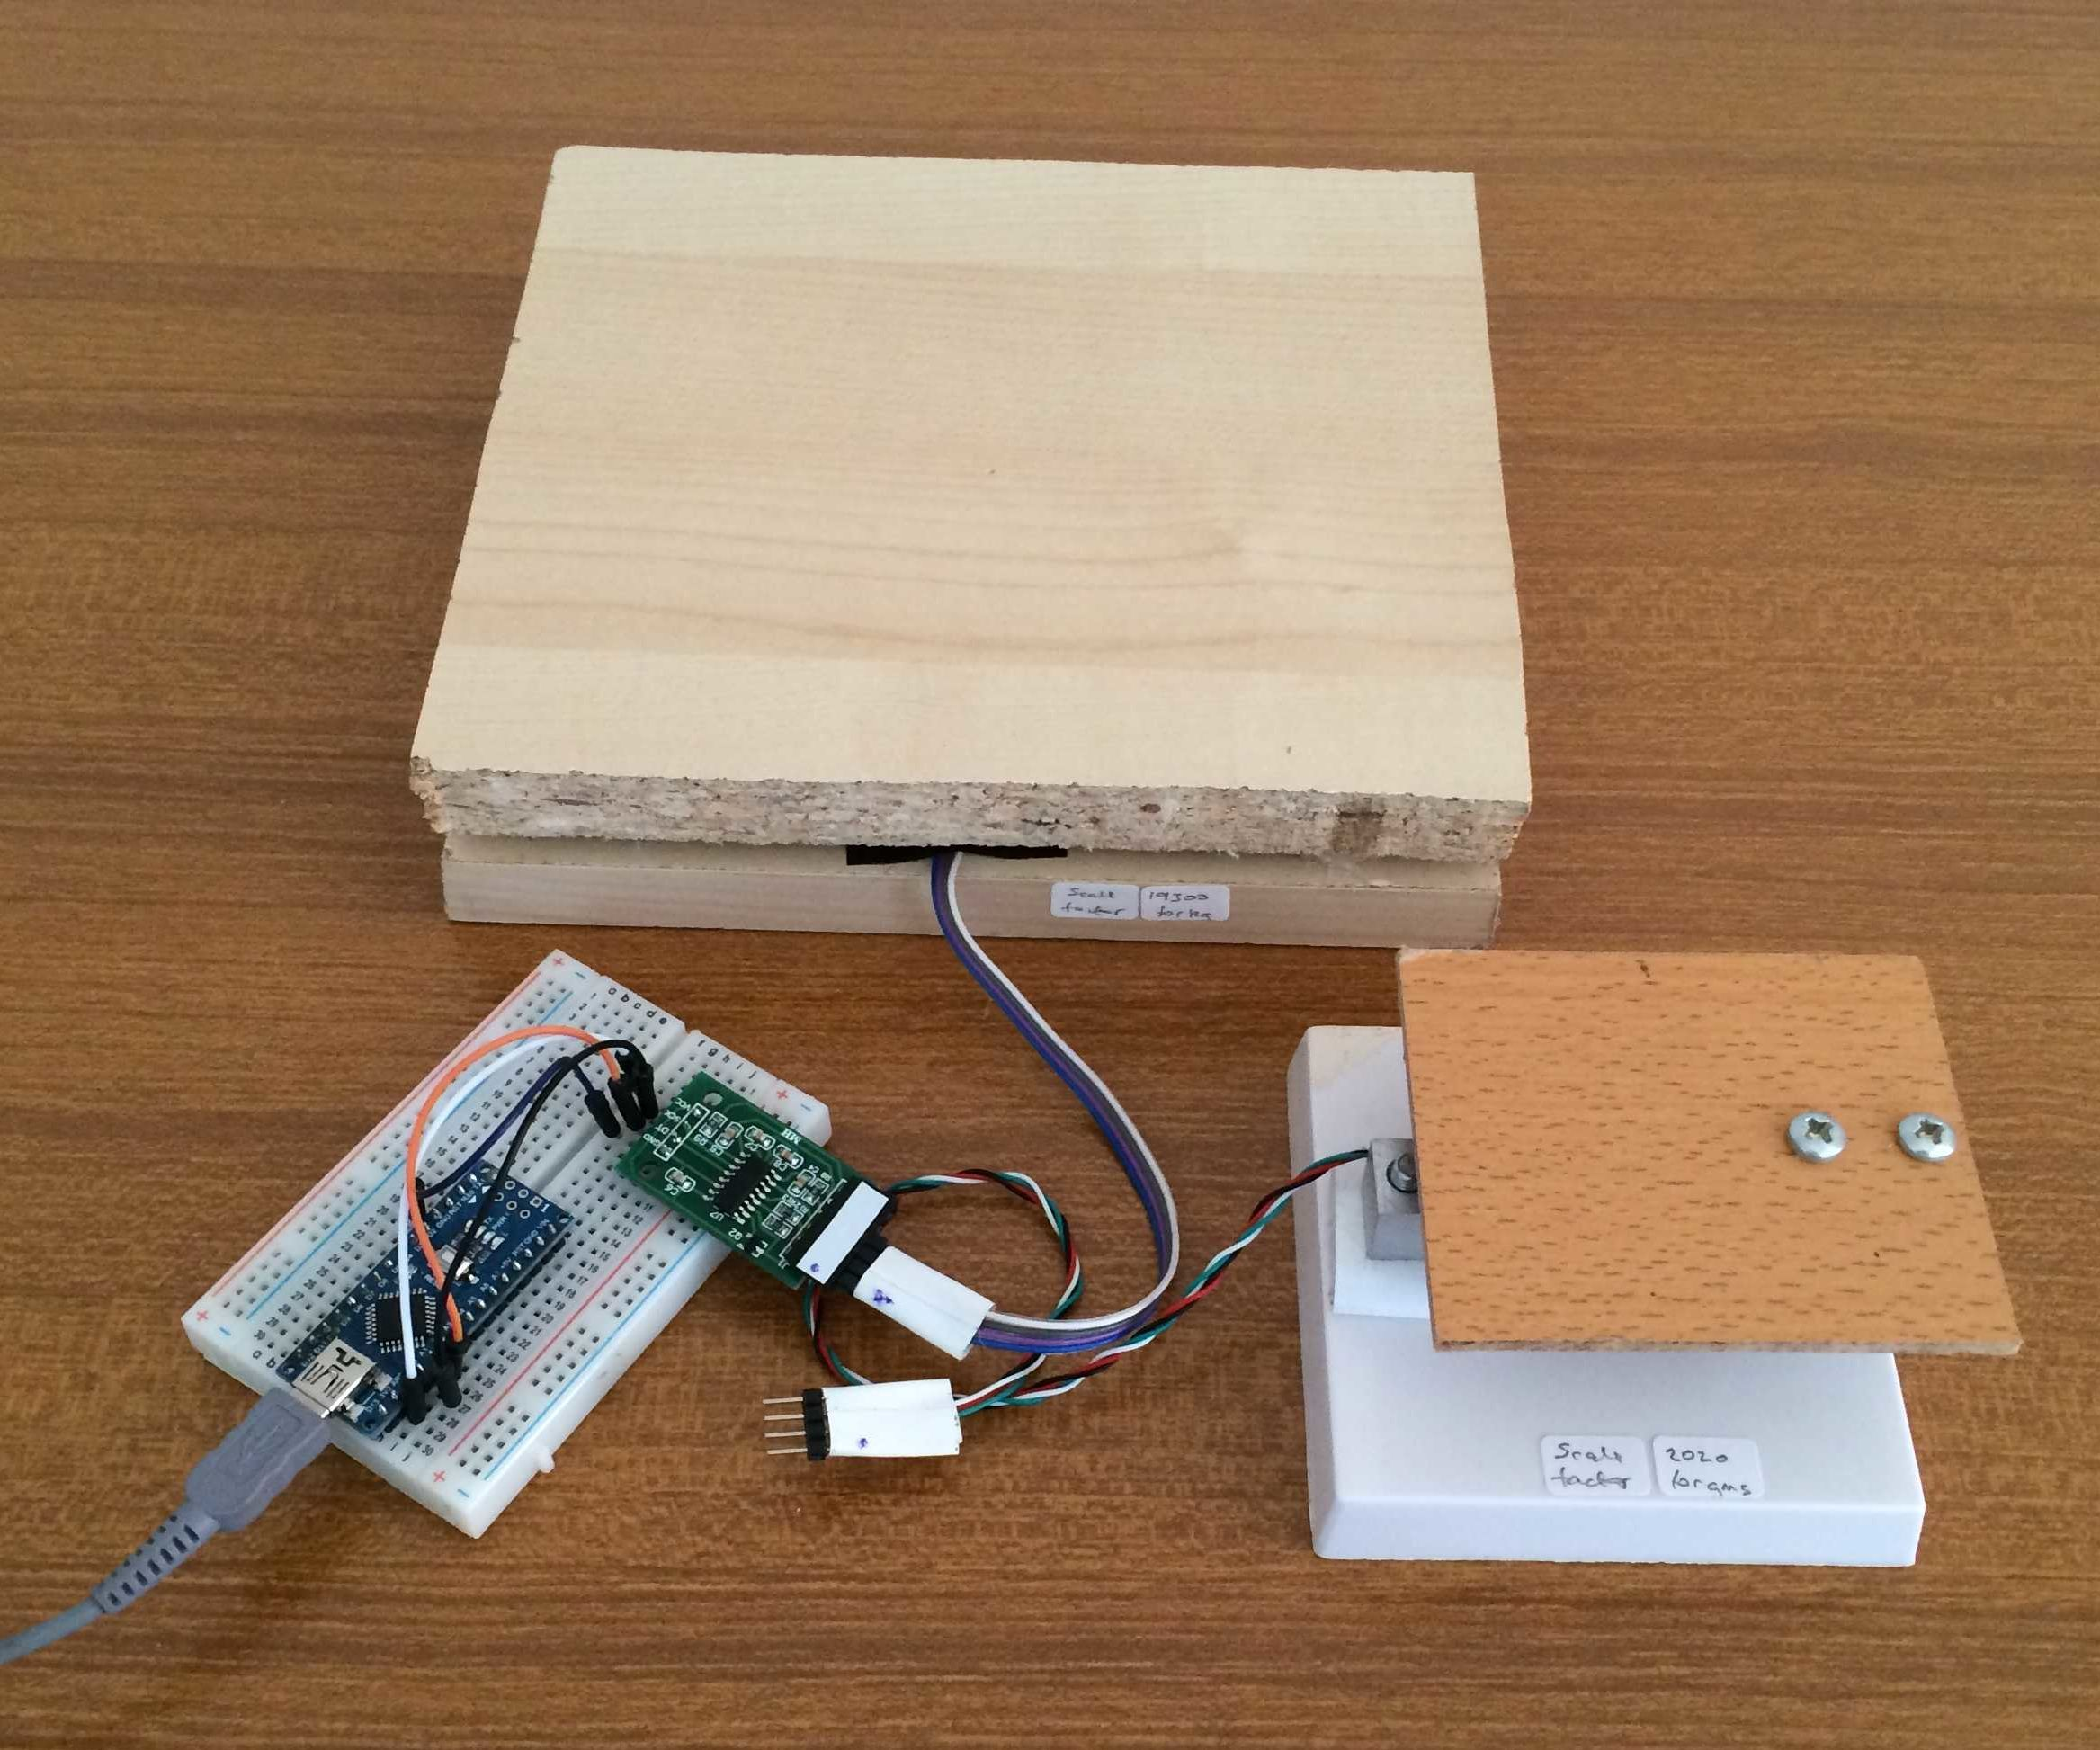 How to Build Arduino Weighing Scales: 8 Steps (with Pictures)